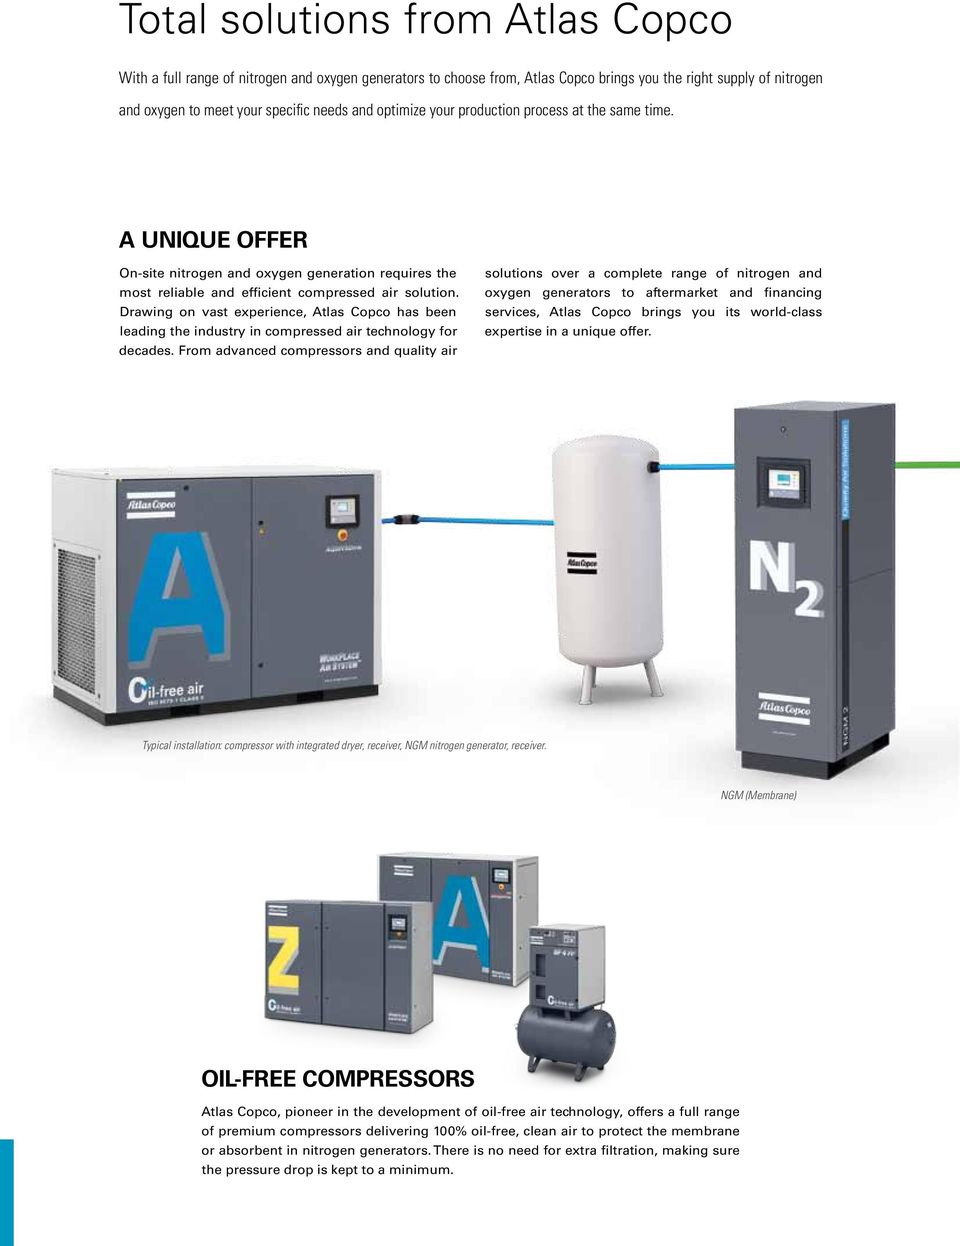 Atlas Copco On Site Industrial Gases Nitrogen Oxygen Generators Pdf Generator Wiring Diagram Drawing Vast Experience Has Been Leading The Industry In Compressed Air Technology